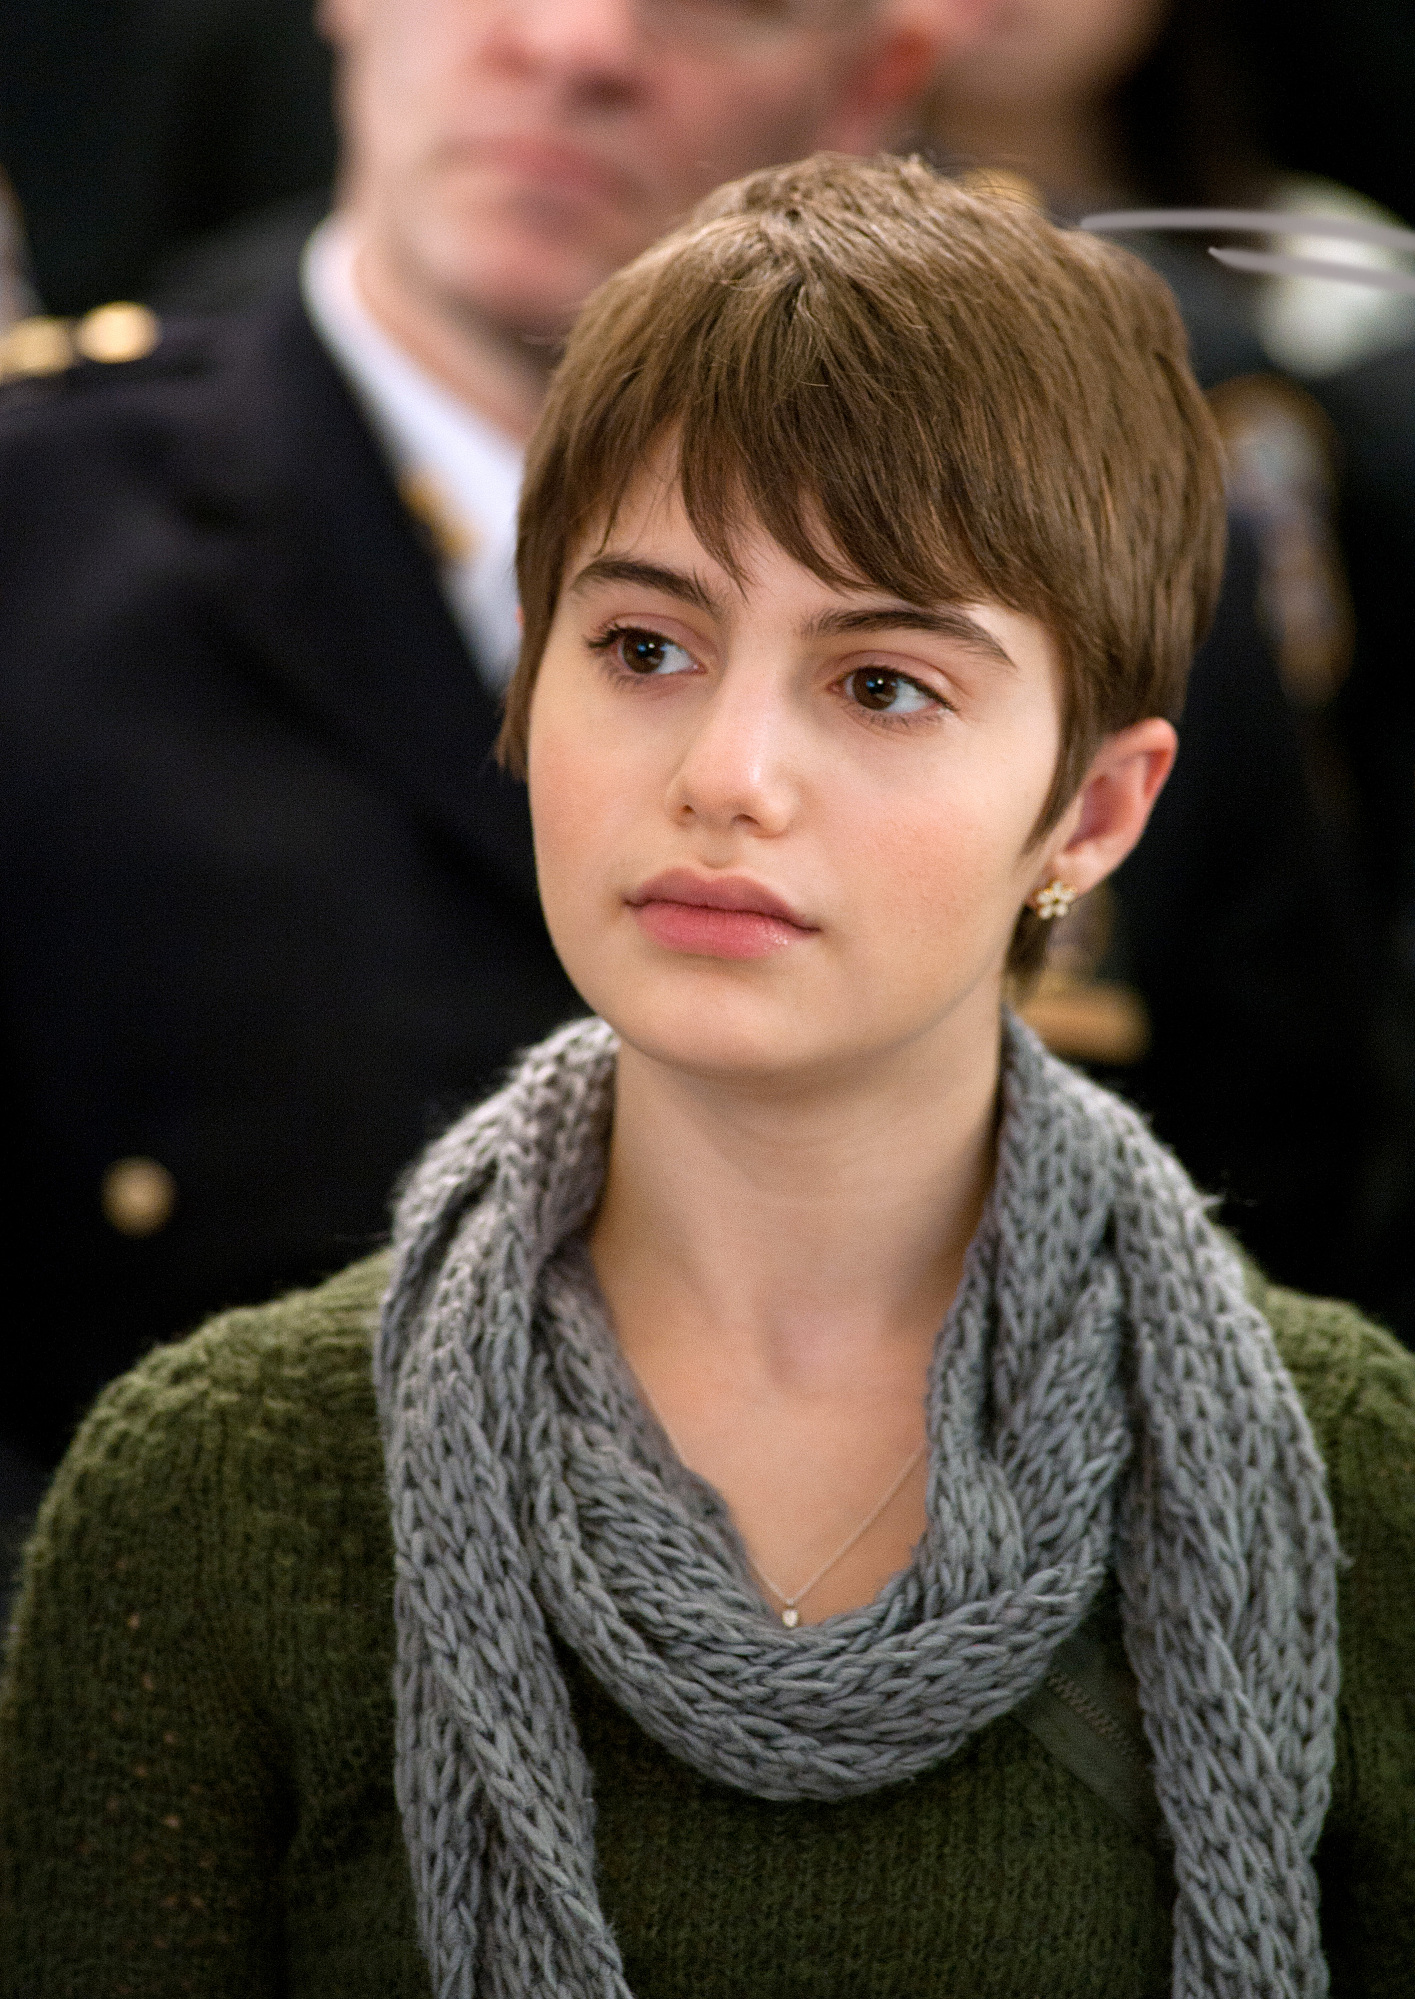 16. Sami Gayle had a recurring role in the TV show